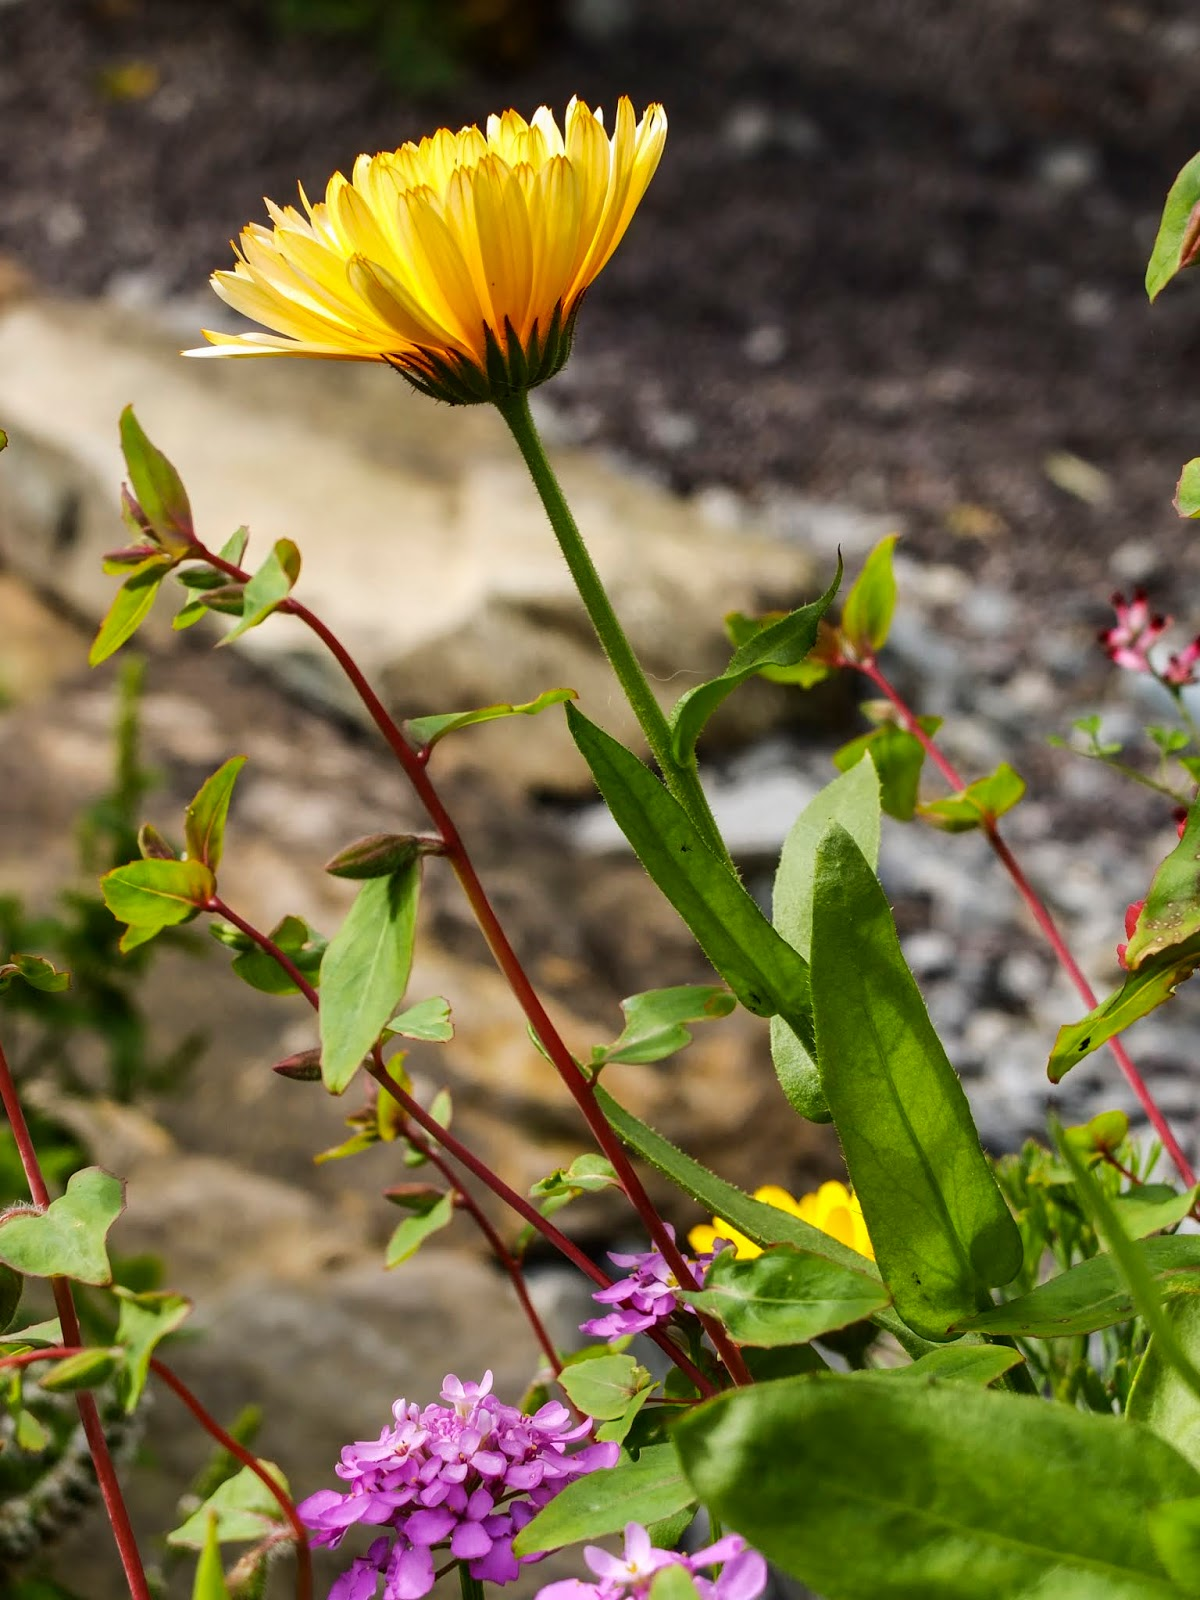 A yellow Calendula flower on a stem hanging over the edge of a flower bed.